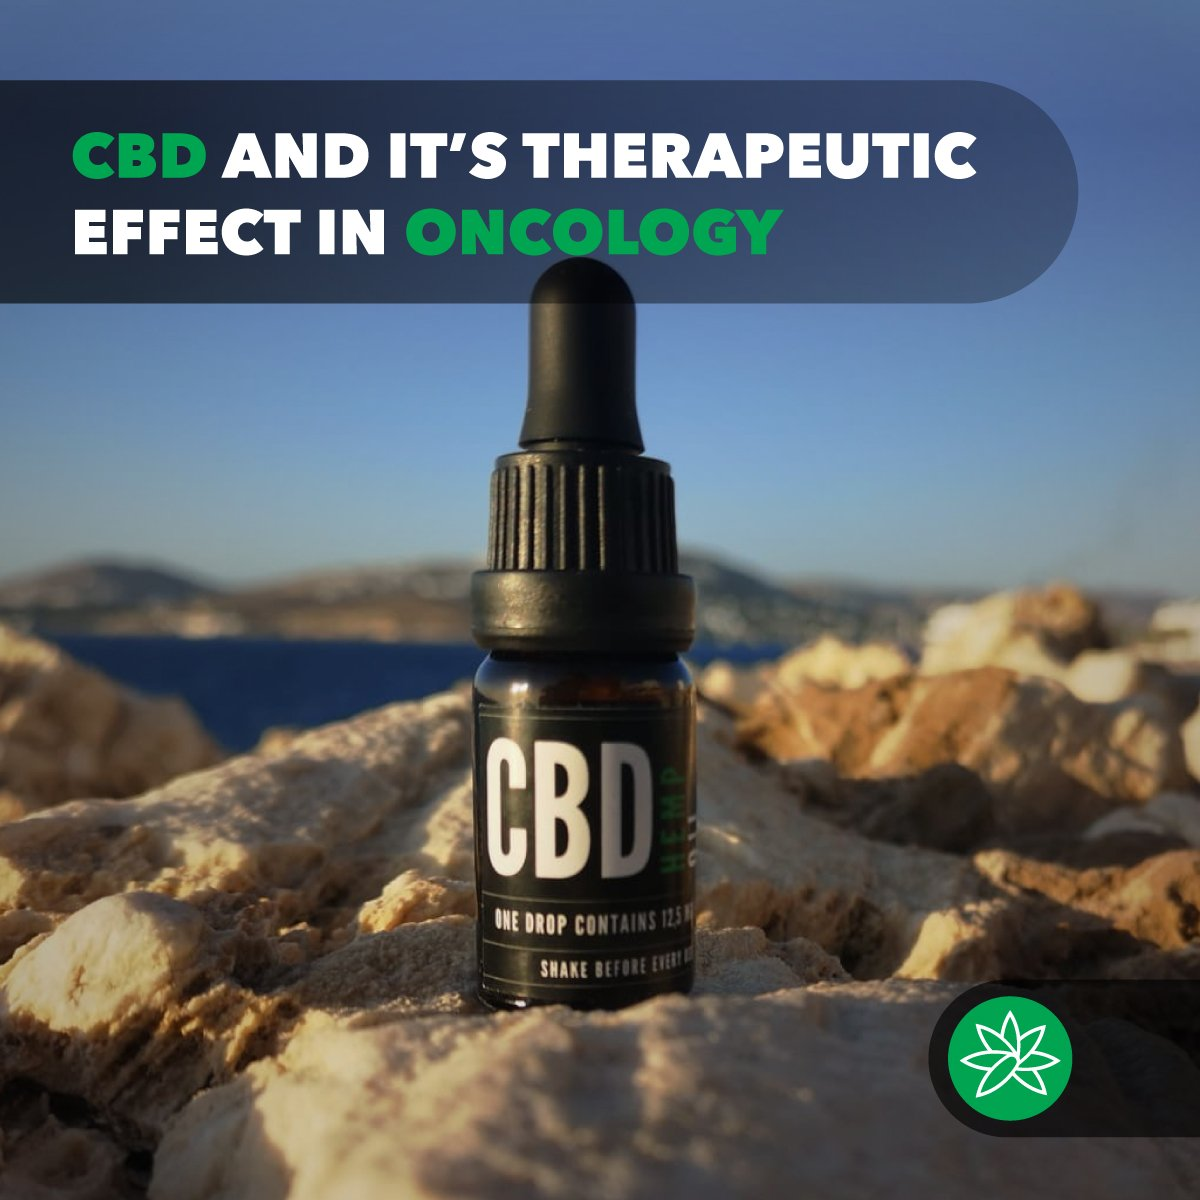 CBD and it's therapeutic effect in oncology